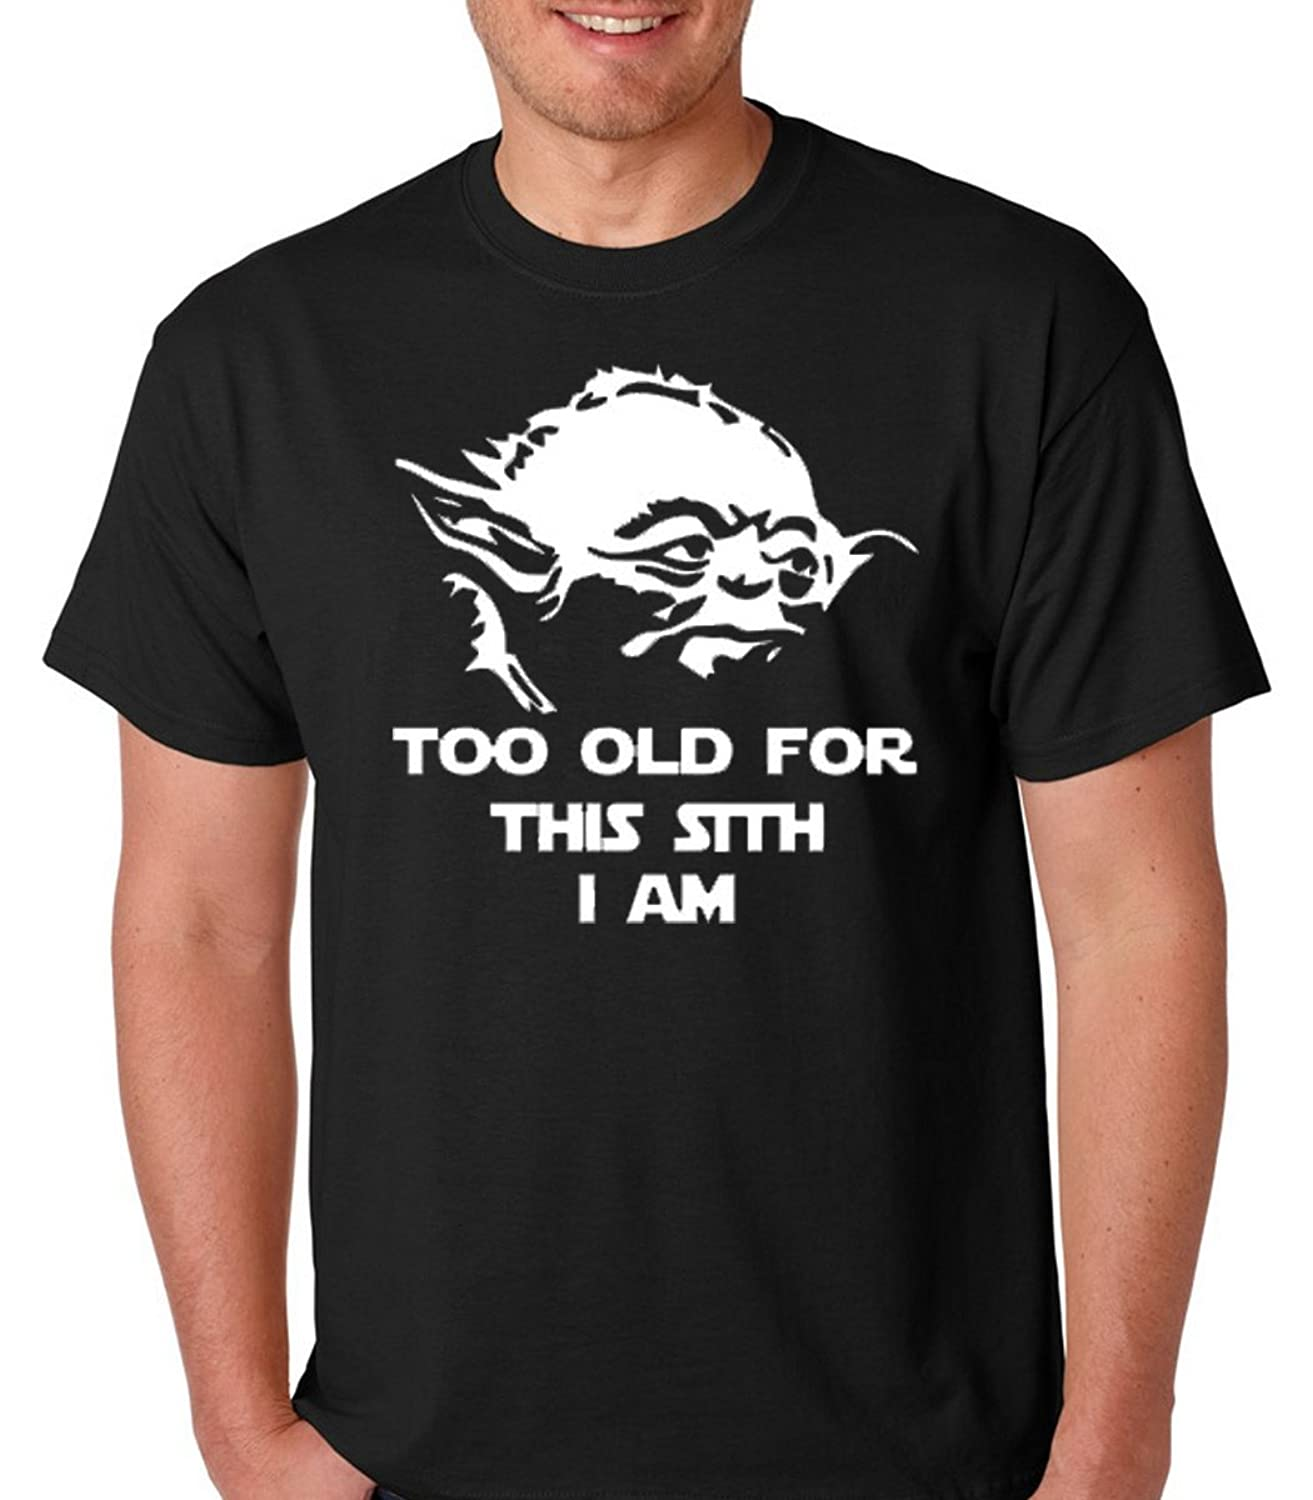 Amazon com: Raw T-Shirt's Yoda Too Old For This Sith-Funny Jedi Yoda